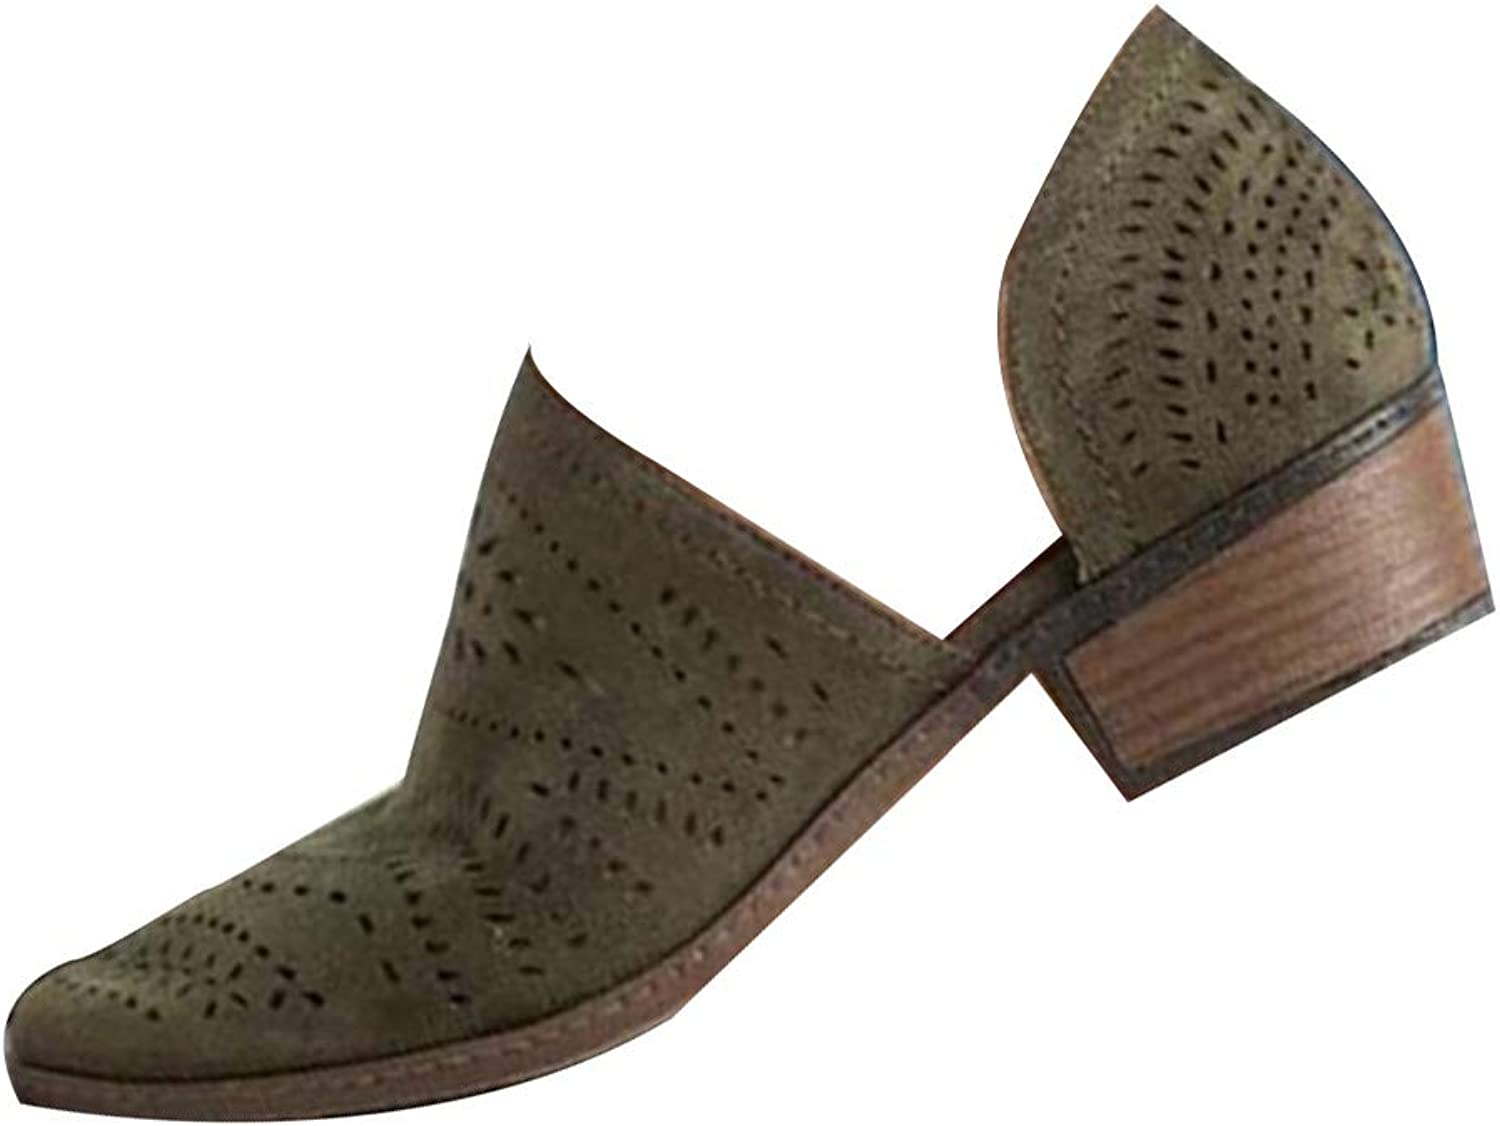 Huicai Women's Solid color Fashion Slim Low-Heeled shoes Office Casual Sandals